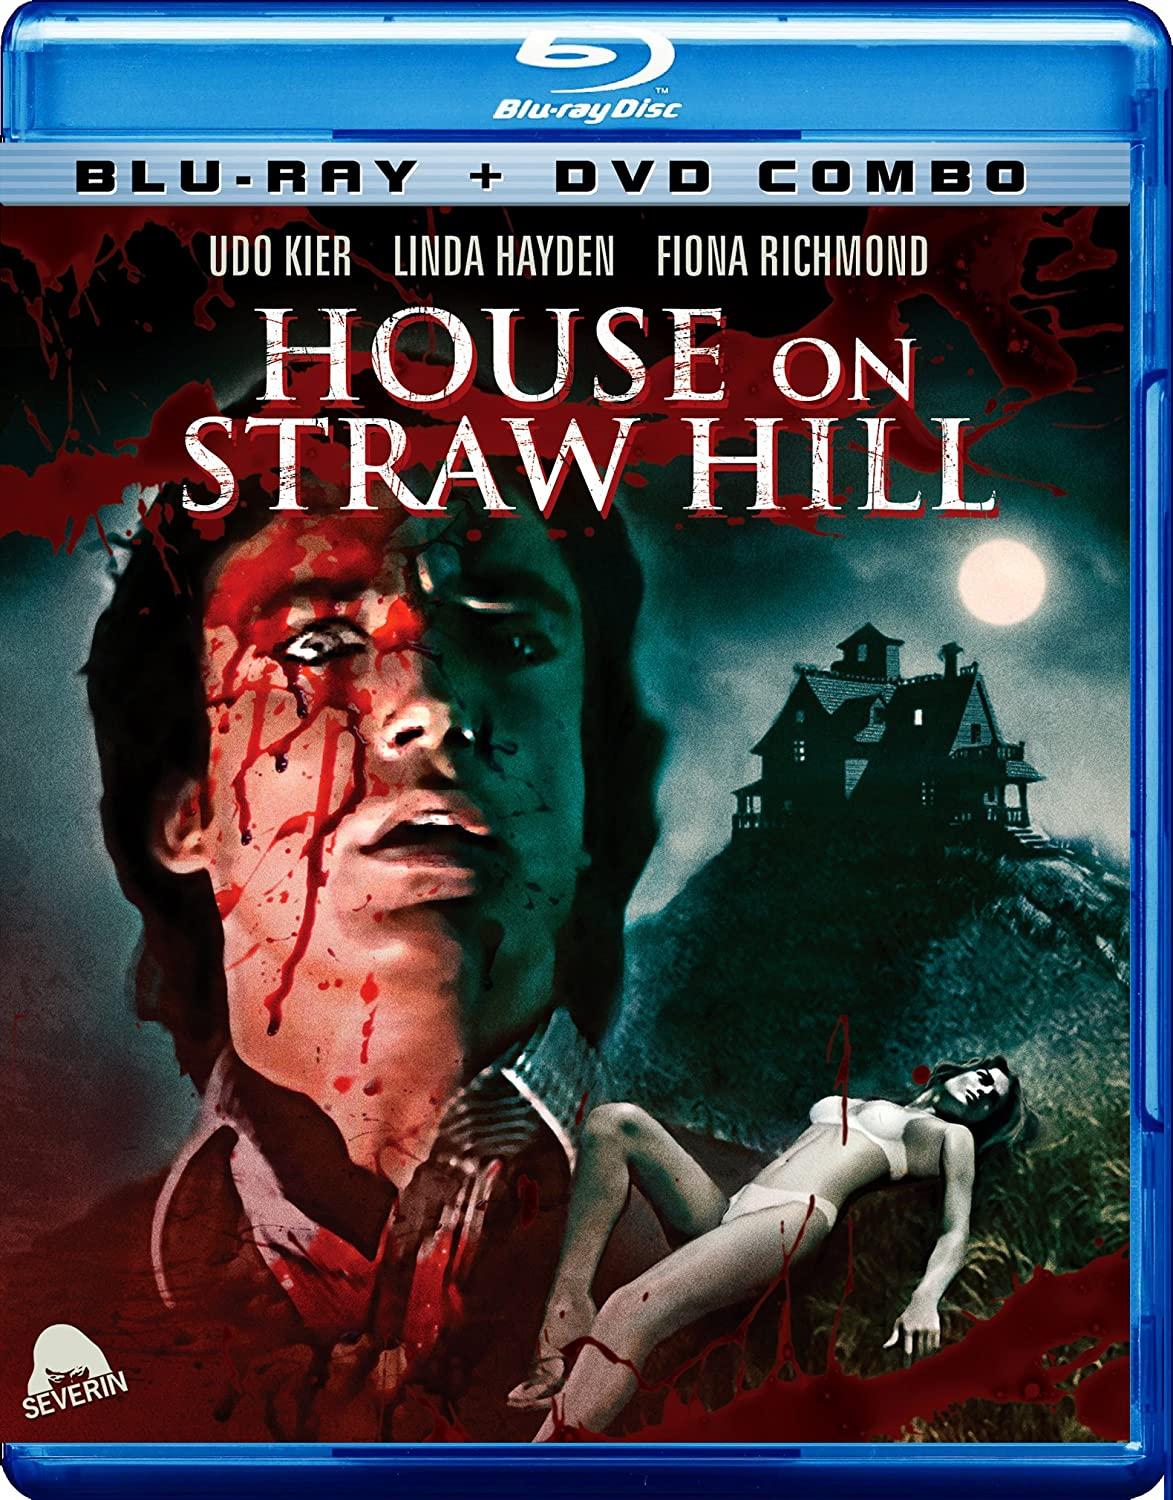 New release House on Straw Hill